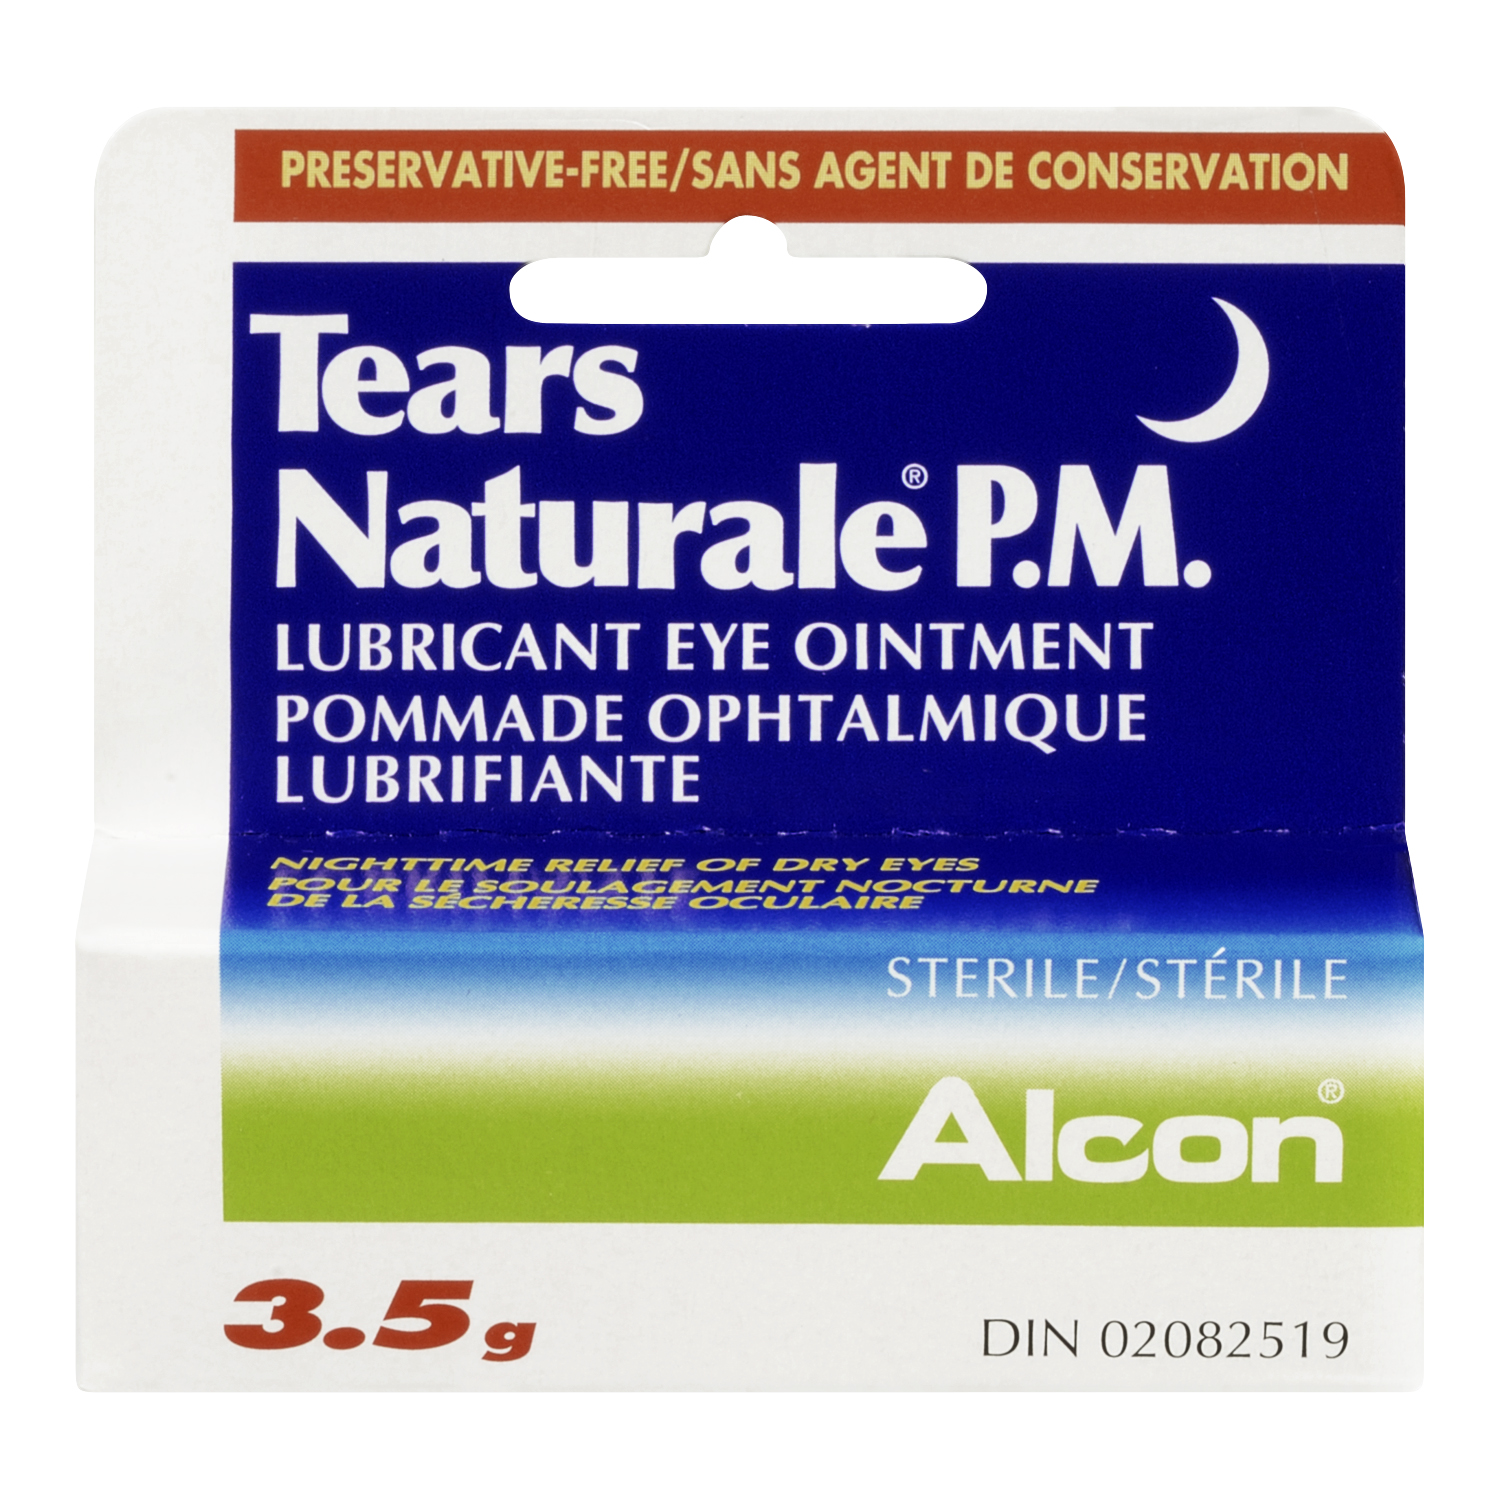 Alcon Tears Naturale P.M. Lubricant Eye Ointment